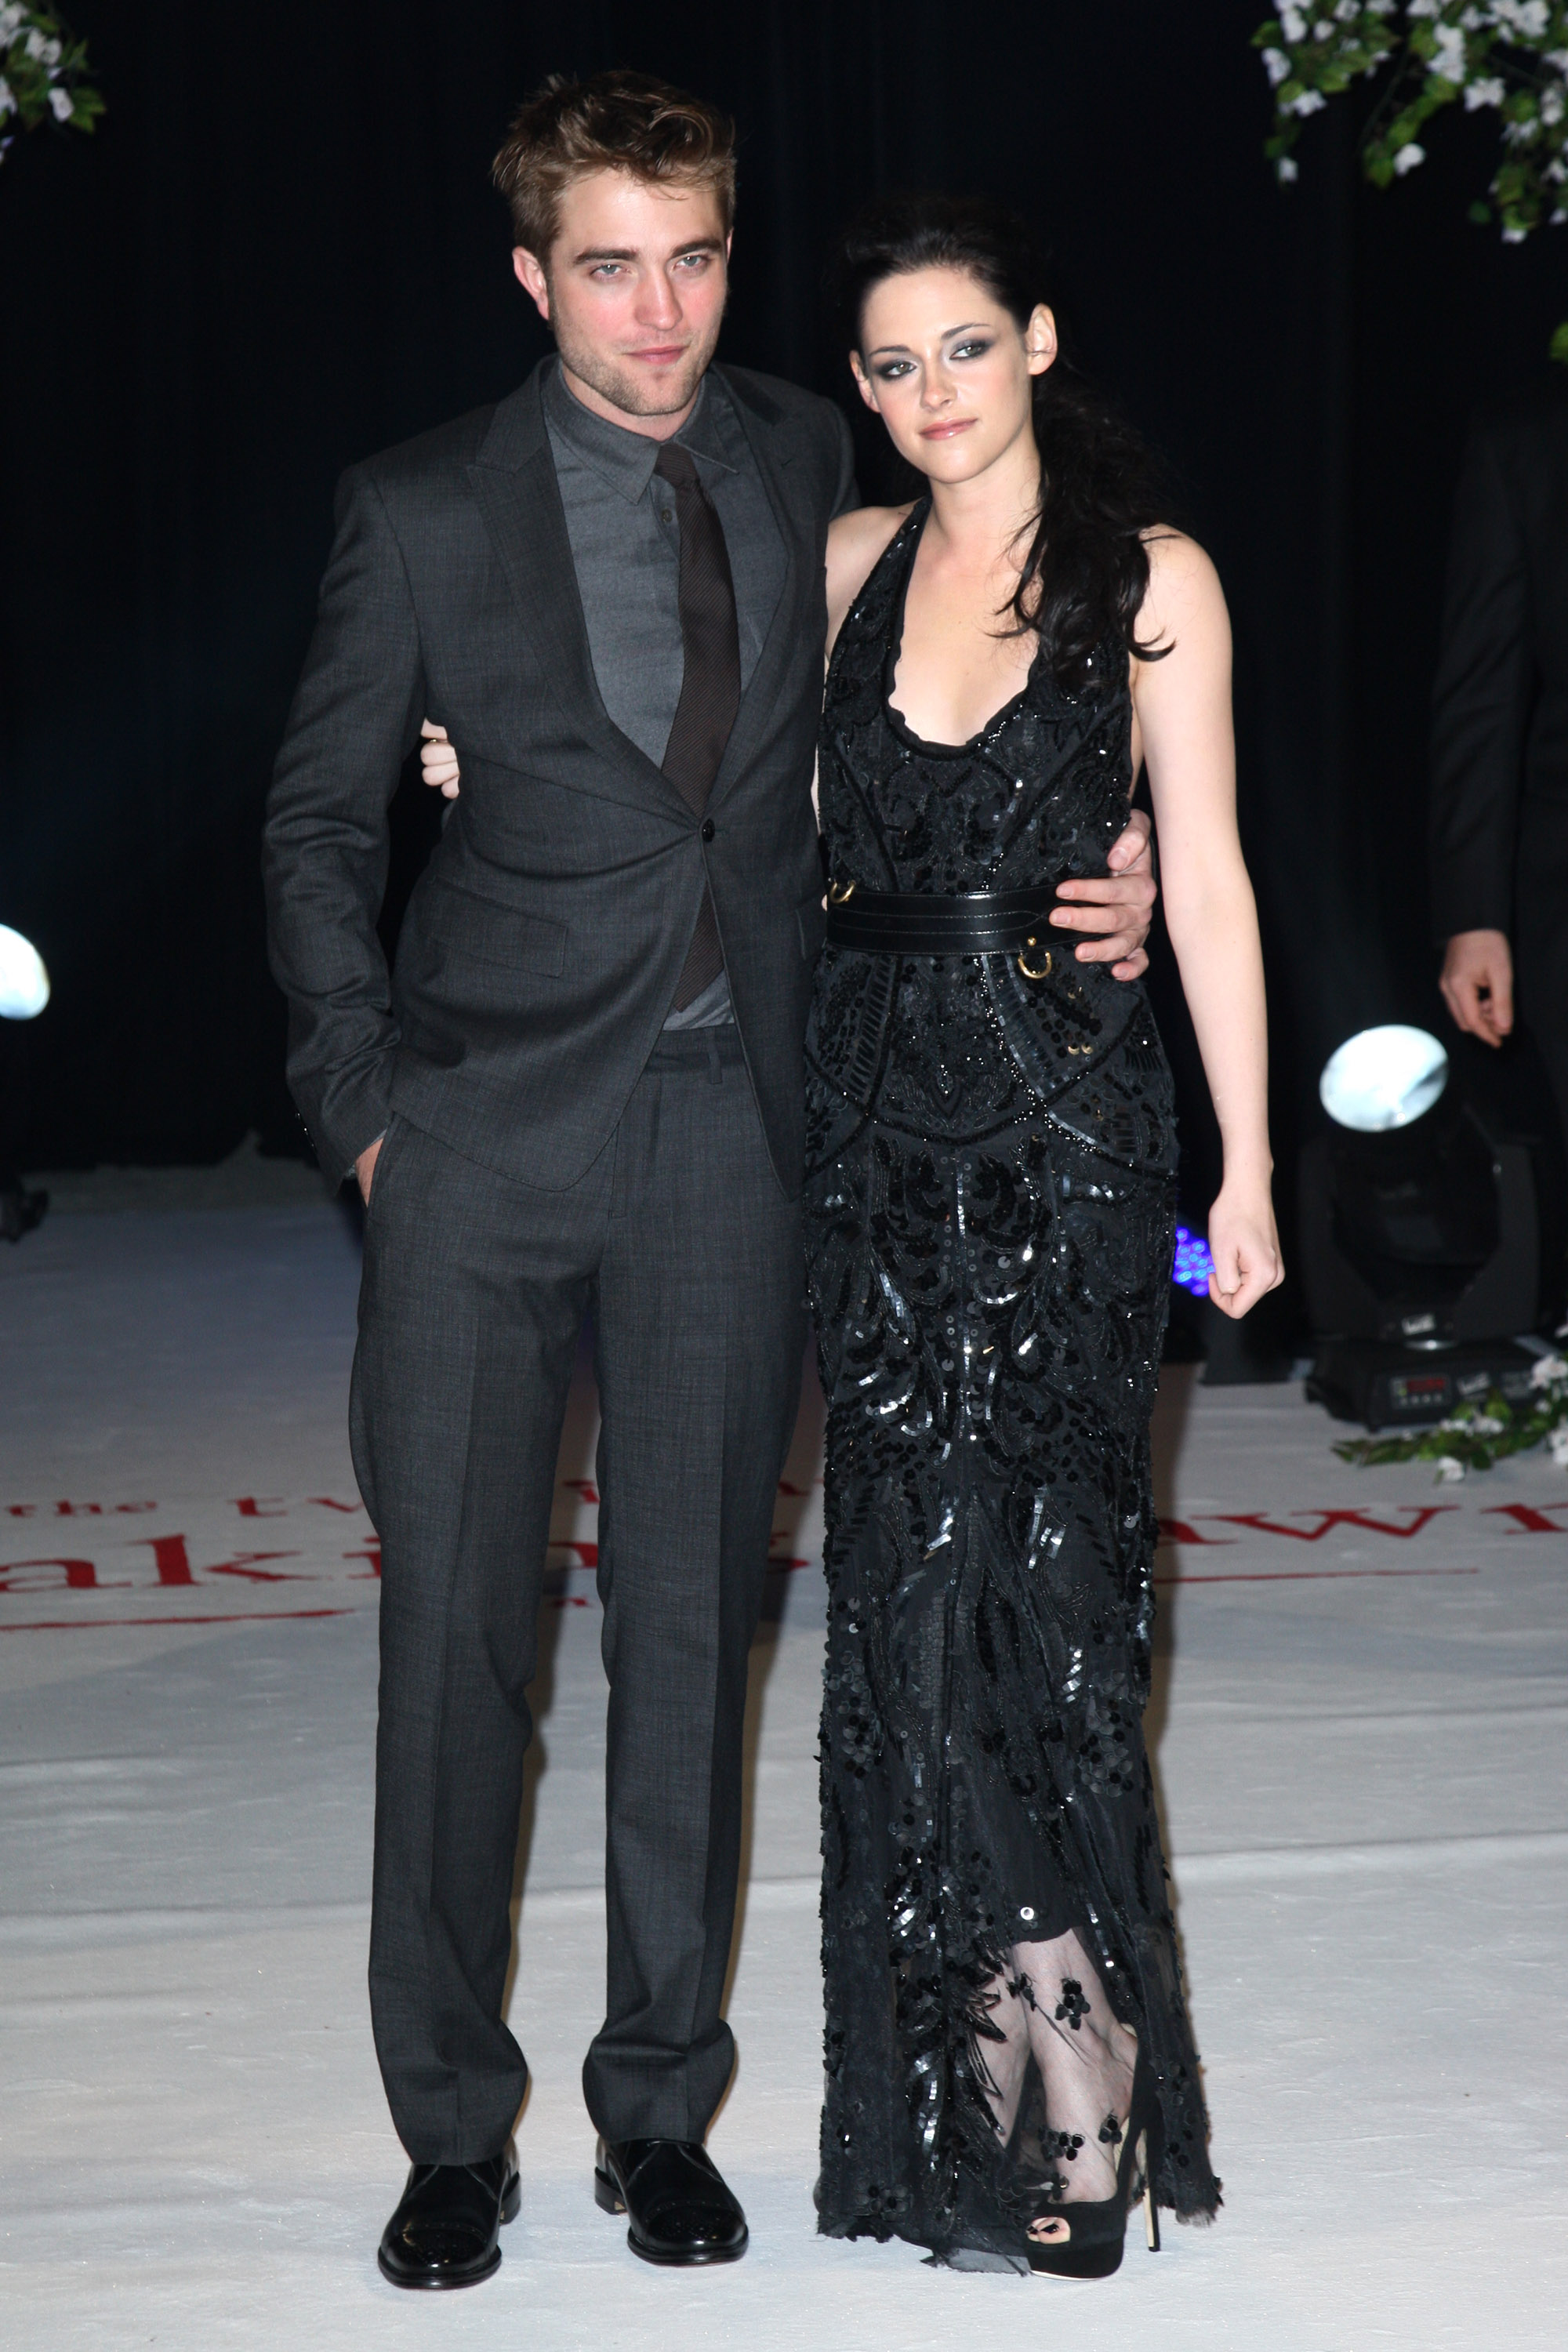 Robert Pattinson and Kristen Stewart at the UK premiere of Breaking Dawn Part 1.